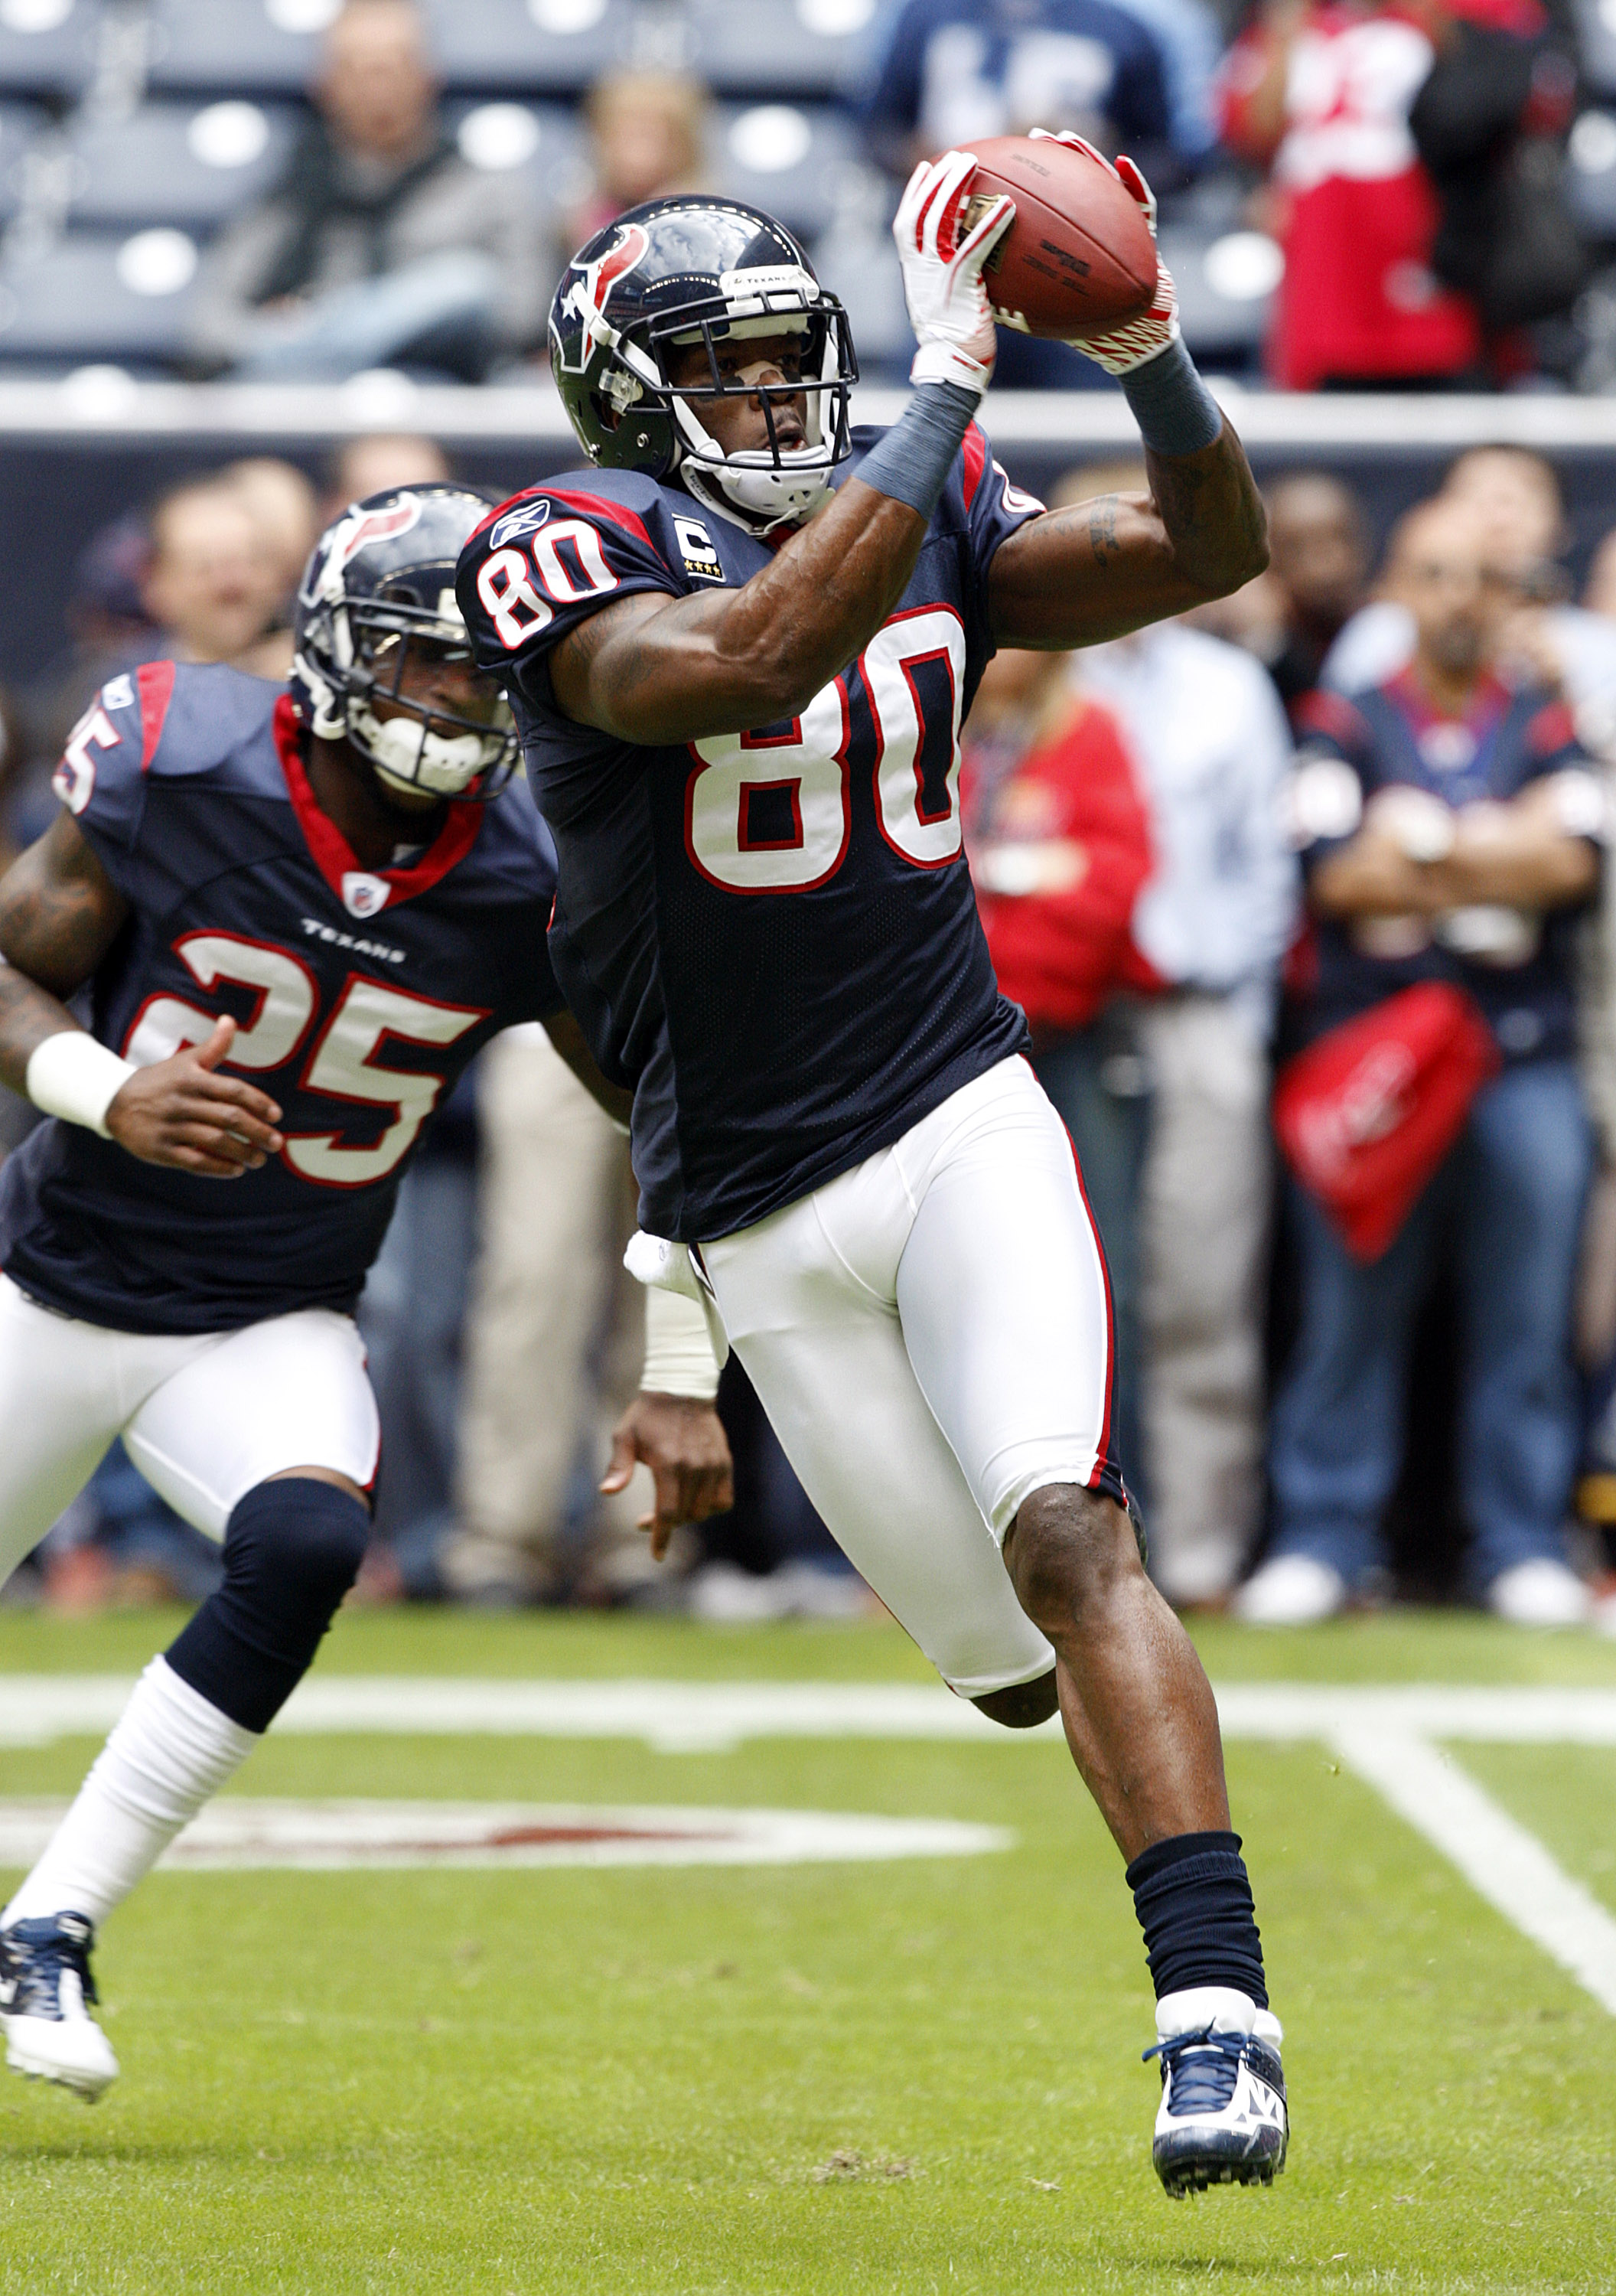 HOUSTON - NOVEMBER 28:  Wide receiver Andre Johnson #80 of the Houston Texans catches a pass during warm ups before playing the Tennessee Titans at Reliant Stadium on November 28, 2010 in Houston, Texas.  (Photo by Bob Levey/Getty Images)